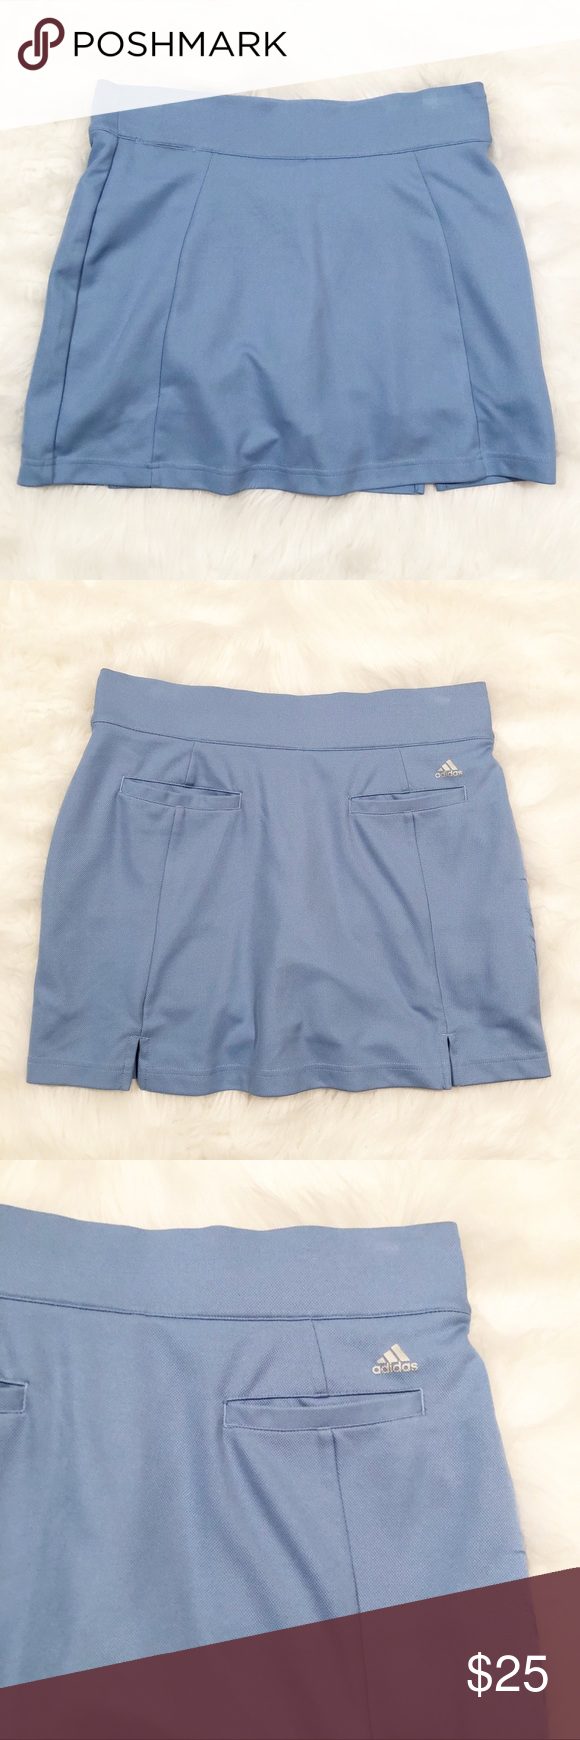 Adidas light blue clima cool golf skort 4 Excellent used condition Adidas light blue clima cool golf skort 4. The color is best shown in the photo of the size tag. Stretchy throughout. Mini length. Waist- approximately 15 inches, length- approximately 15.5 inches. J adidas Shorts Skorts #lightblueshorts